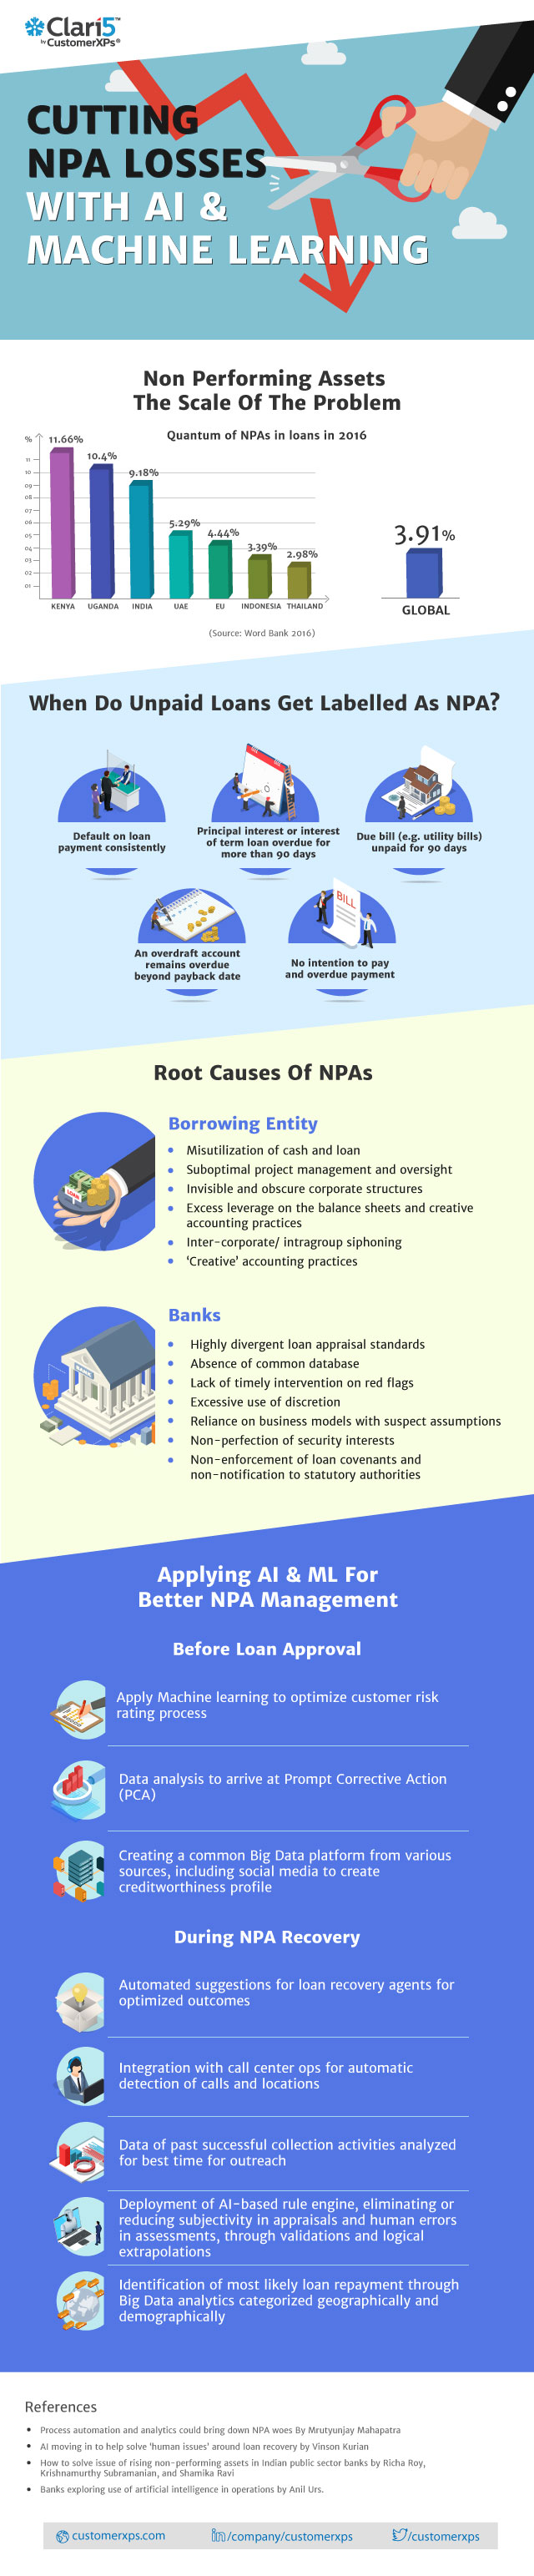 Cutting NPA Losses with AI & Machine Learning